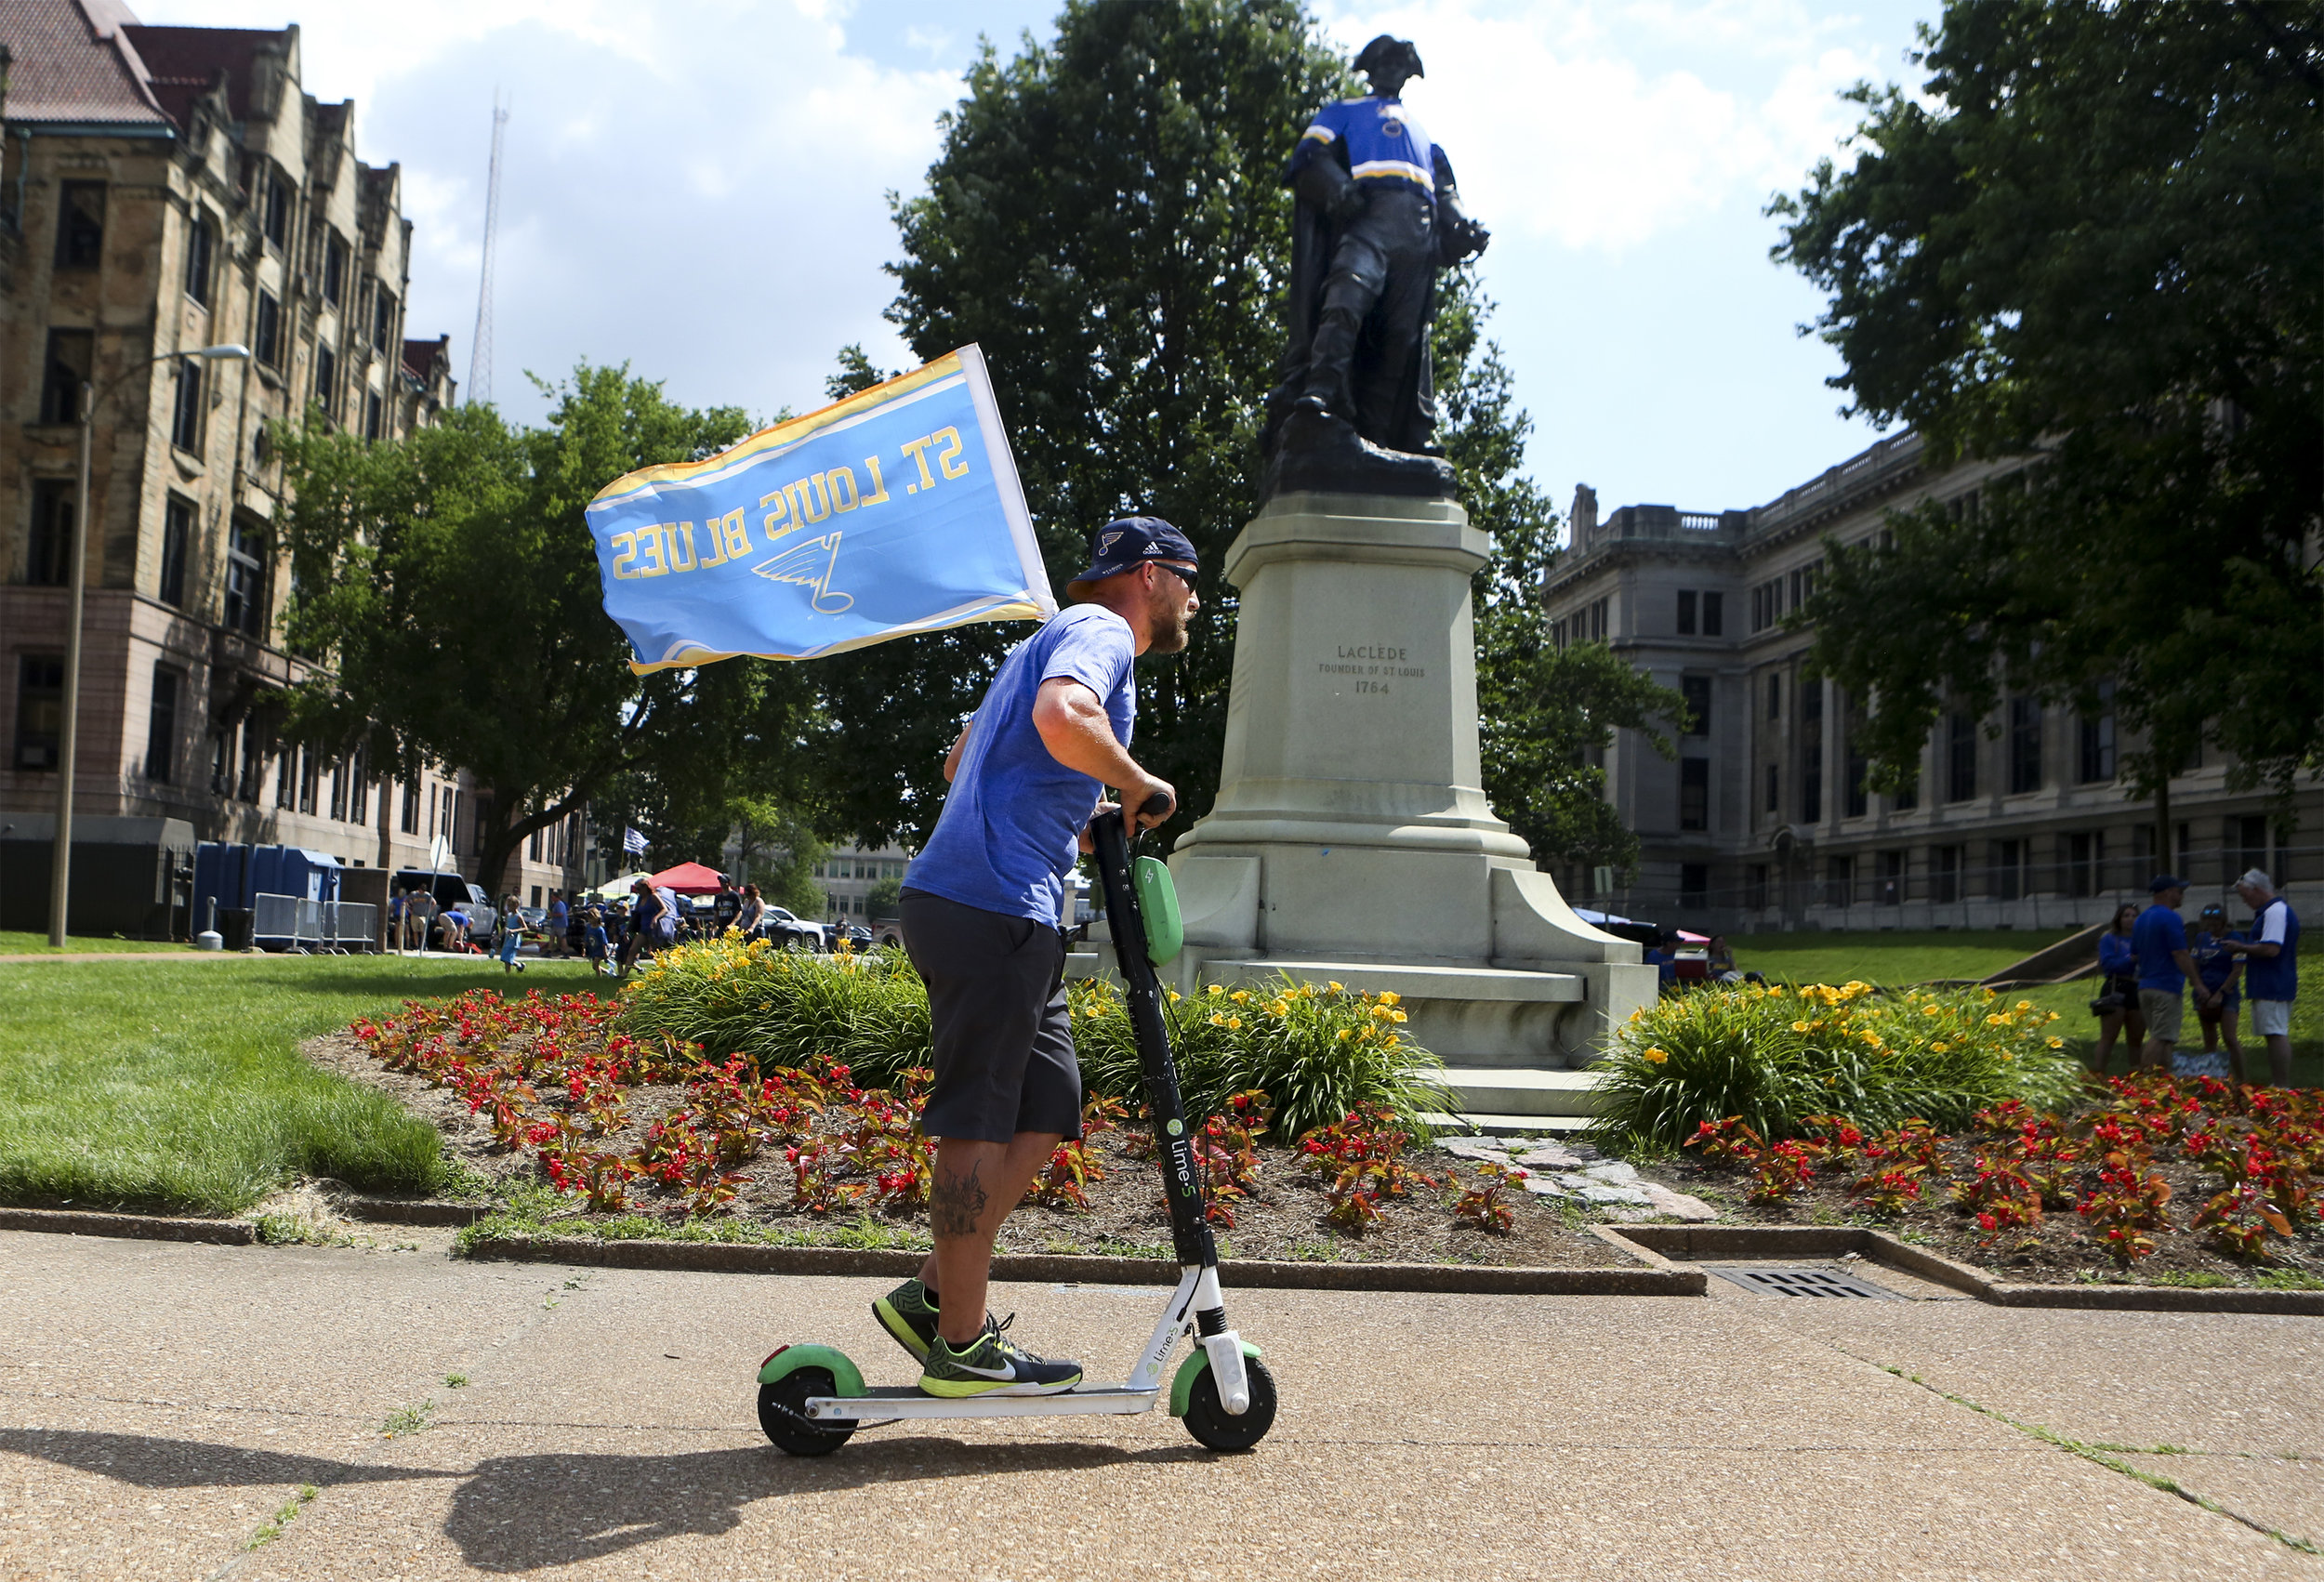 A Blues fan rides a Lime scooter down the sidewalk along Market street before the Stanley Cup Finals game 6 on Sunday, June 9, 2019.